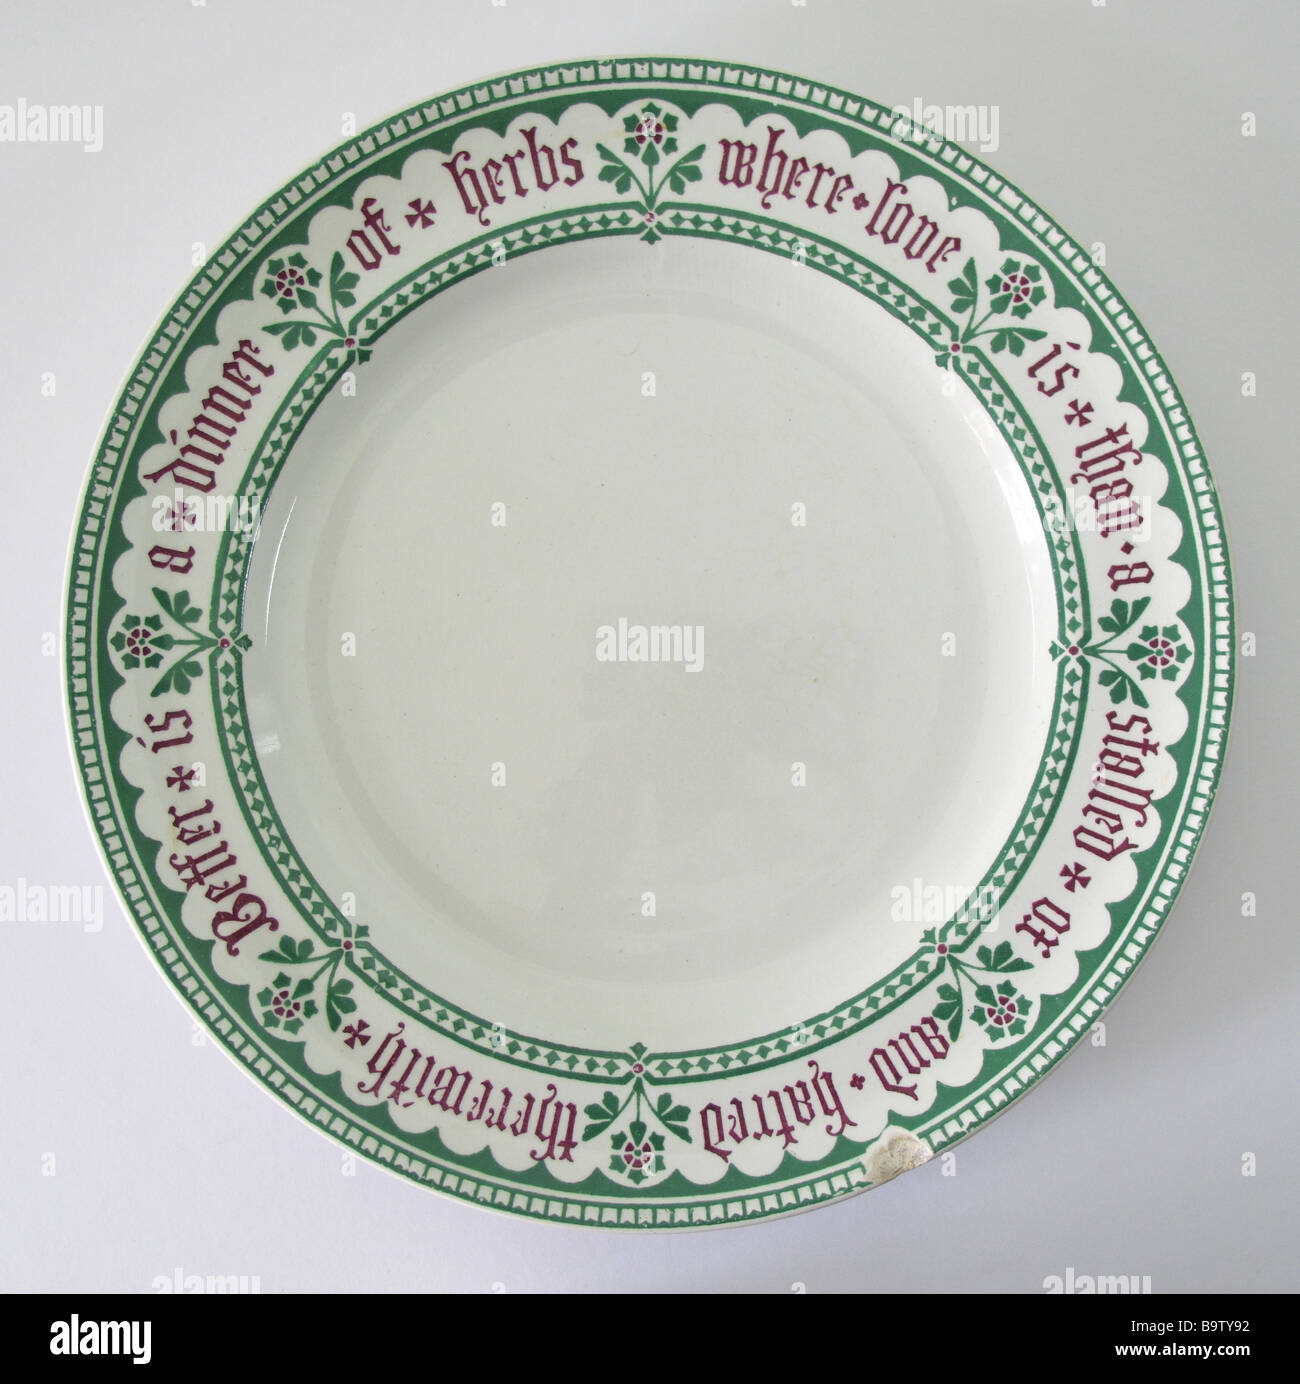 Minton dinner plate with Gothic moto border designed by A.W.N. Pugin circa 1845. - Stock Image